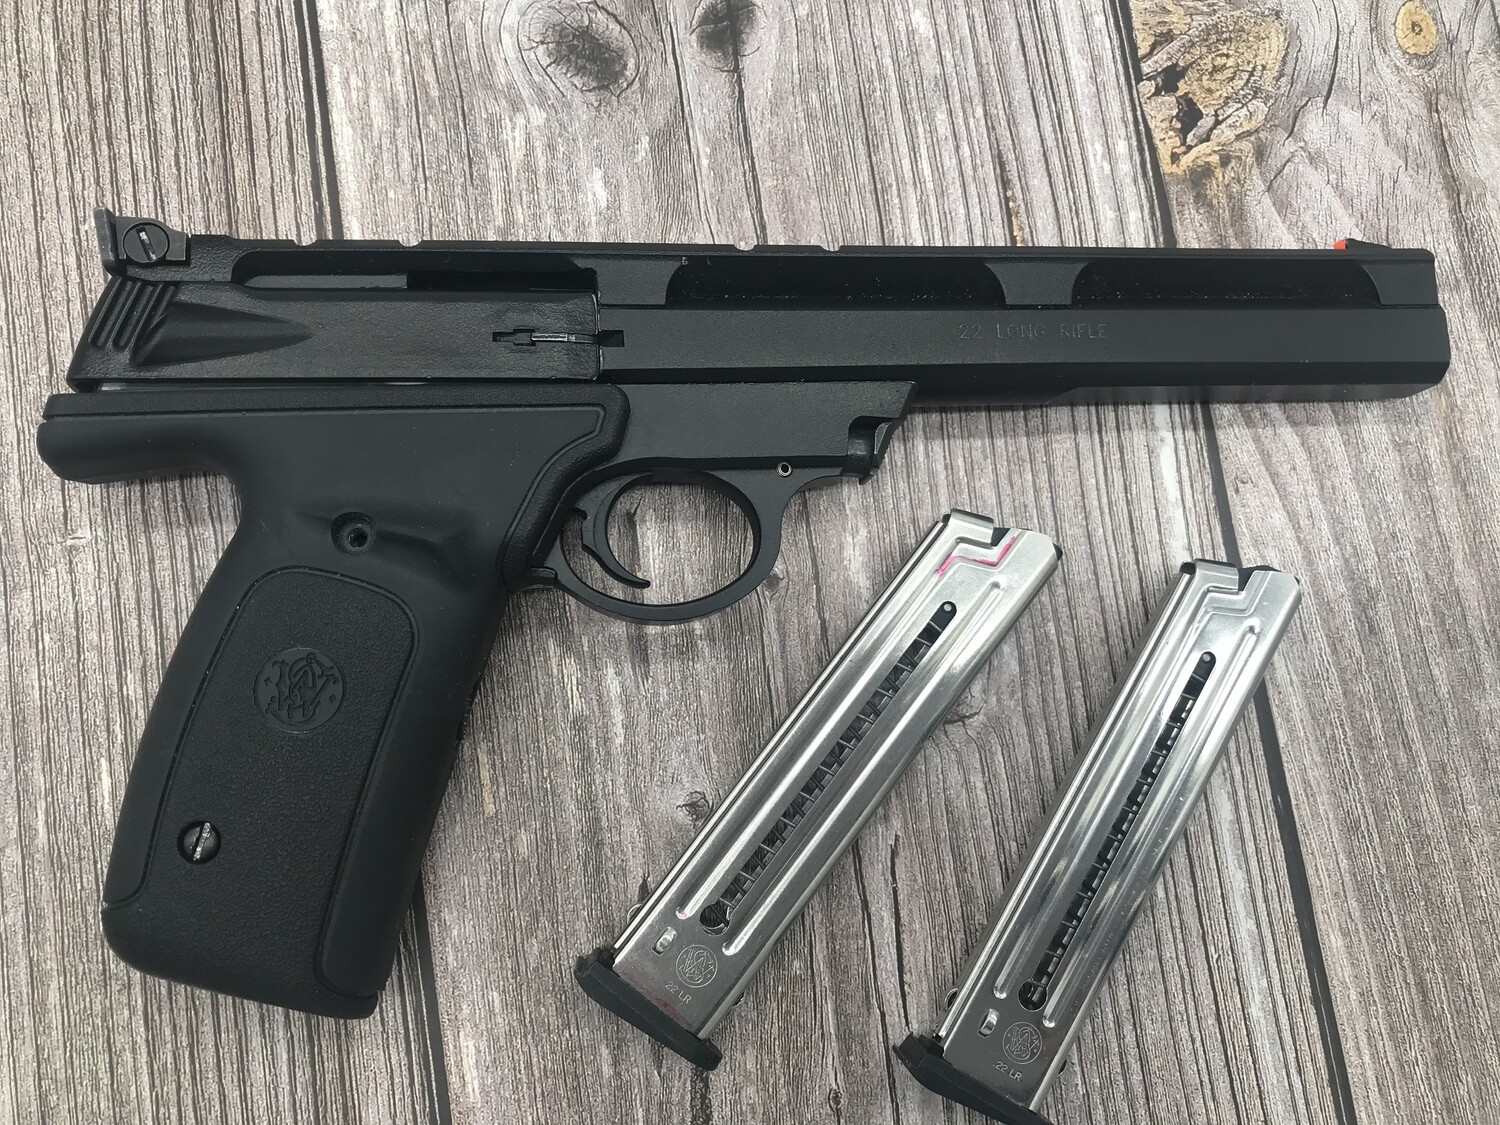 Smith & Wesson 22A 7 inch barrel, .22Lr pistol pre owned